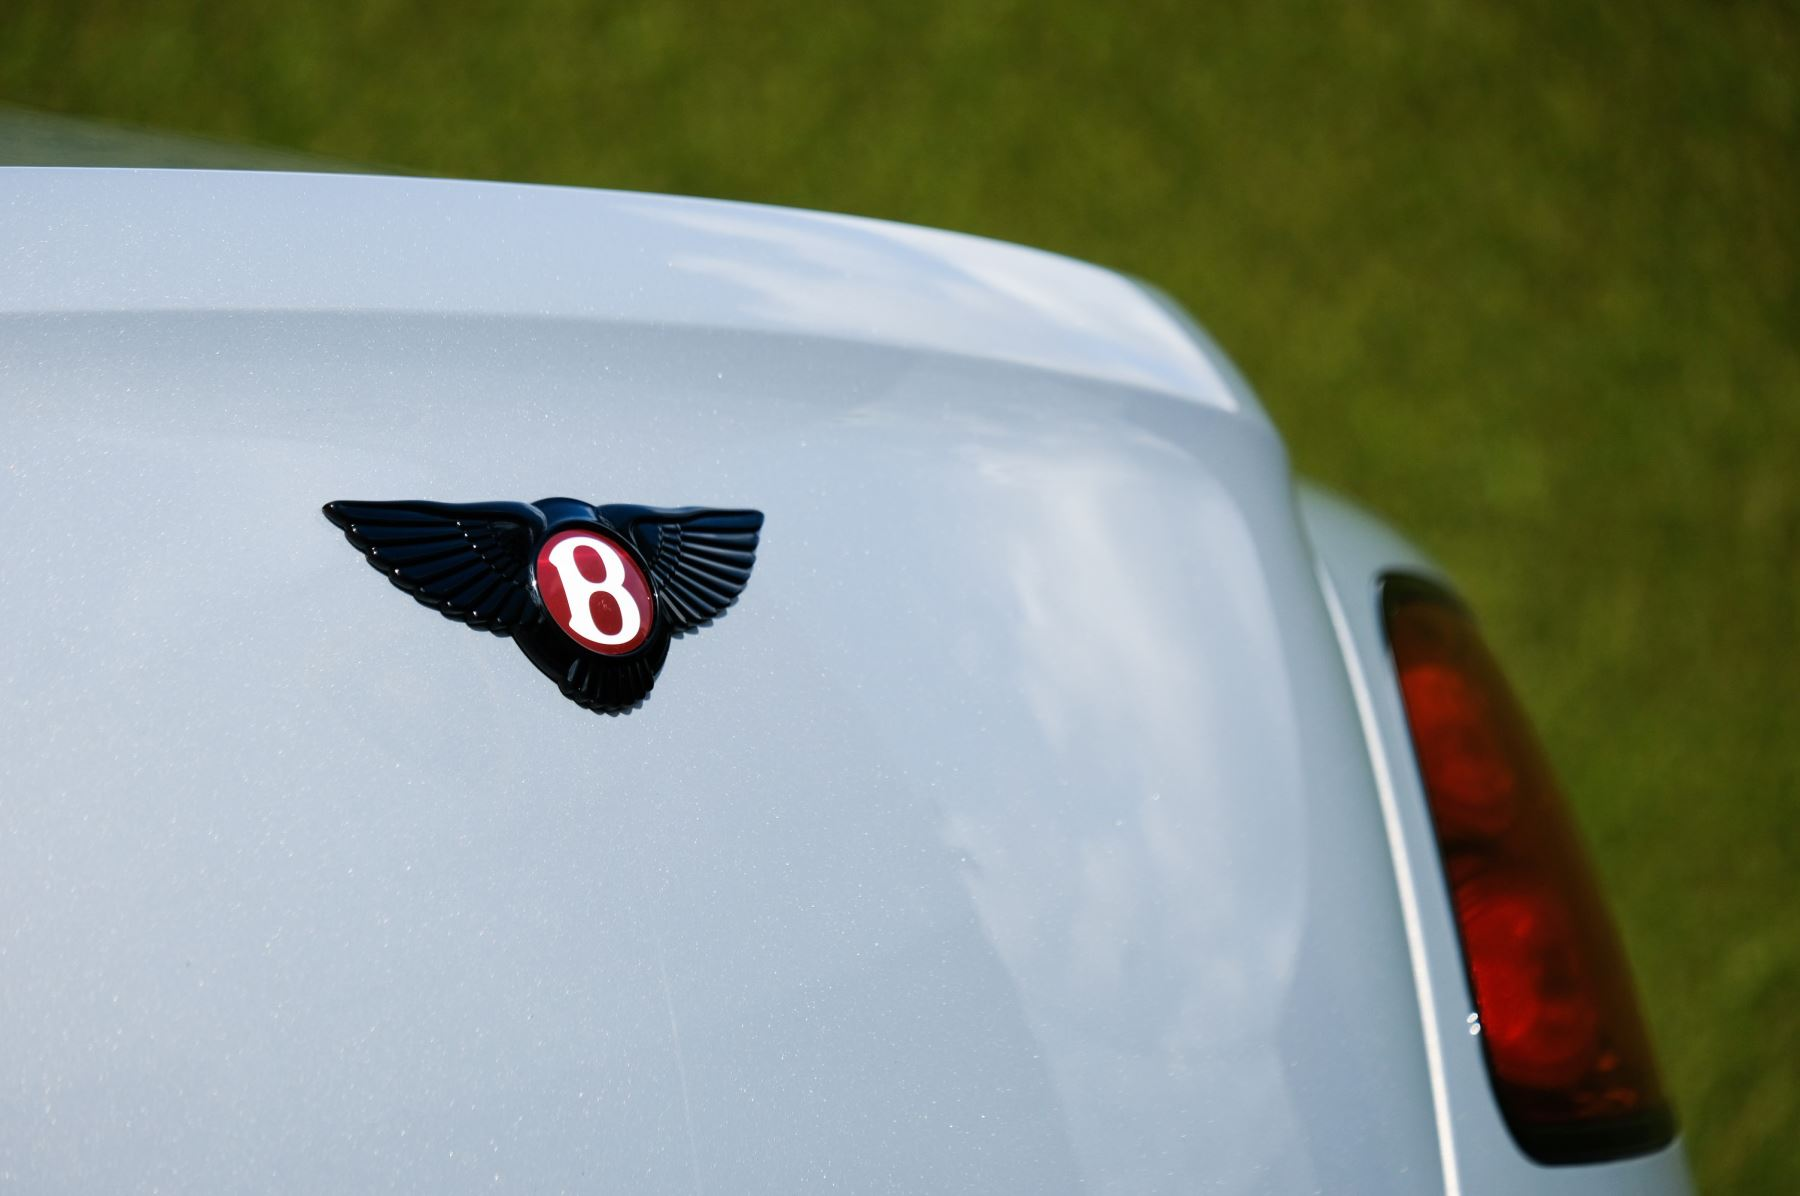 Bentley Continental GTC 4.0 V8 S Mulliner Driving Spec - Ventilated Front Seats with Massage Function image 9